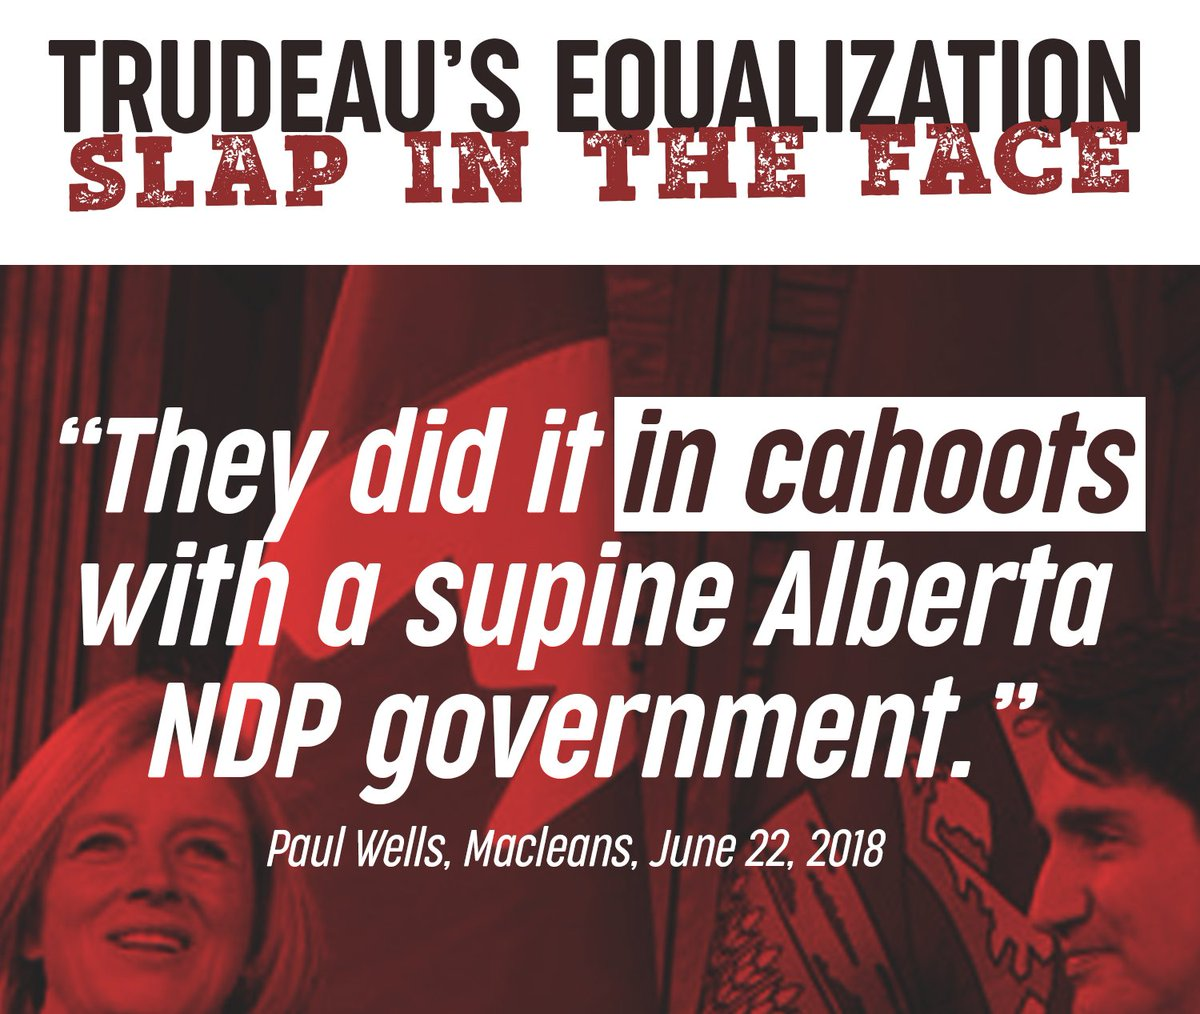 It&#39;s becoming quite clear that the Alberta NDP was fully aware what Justin Trudeau was up to on Equalization - but did next to nothing to object. The NDP should explain why. Albertans expect more from their government. <br>http://pic.twitter.com/dj0Web8RpB